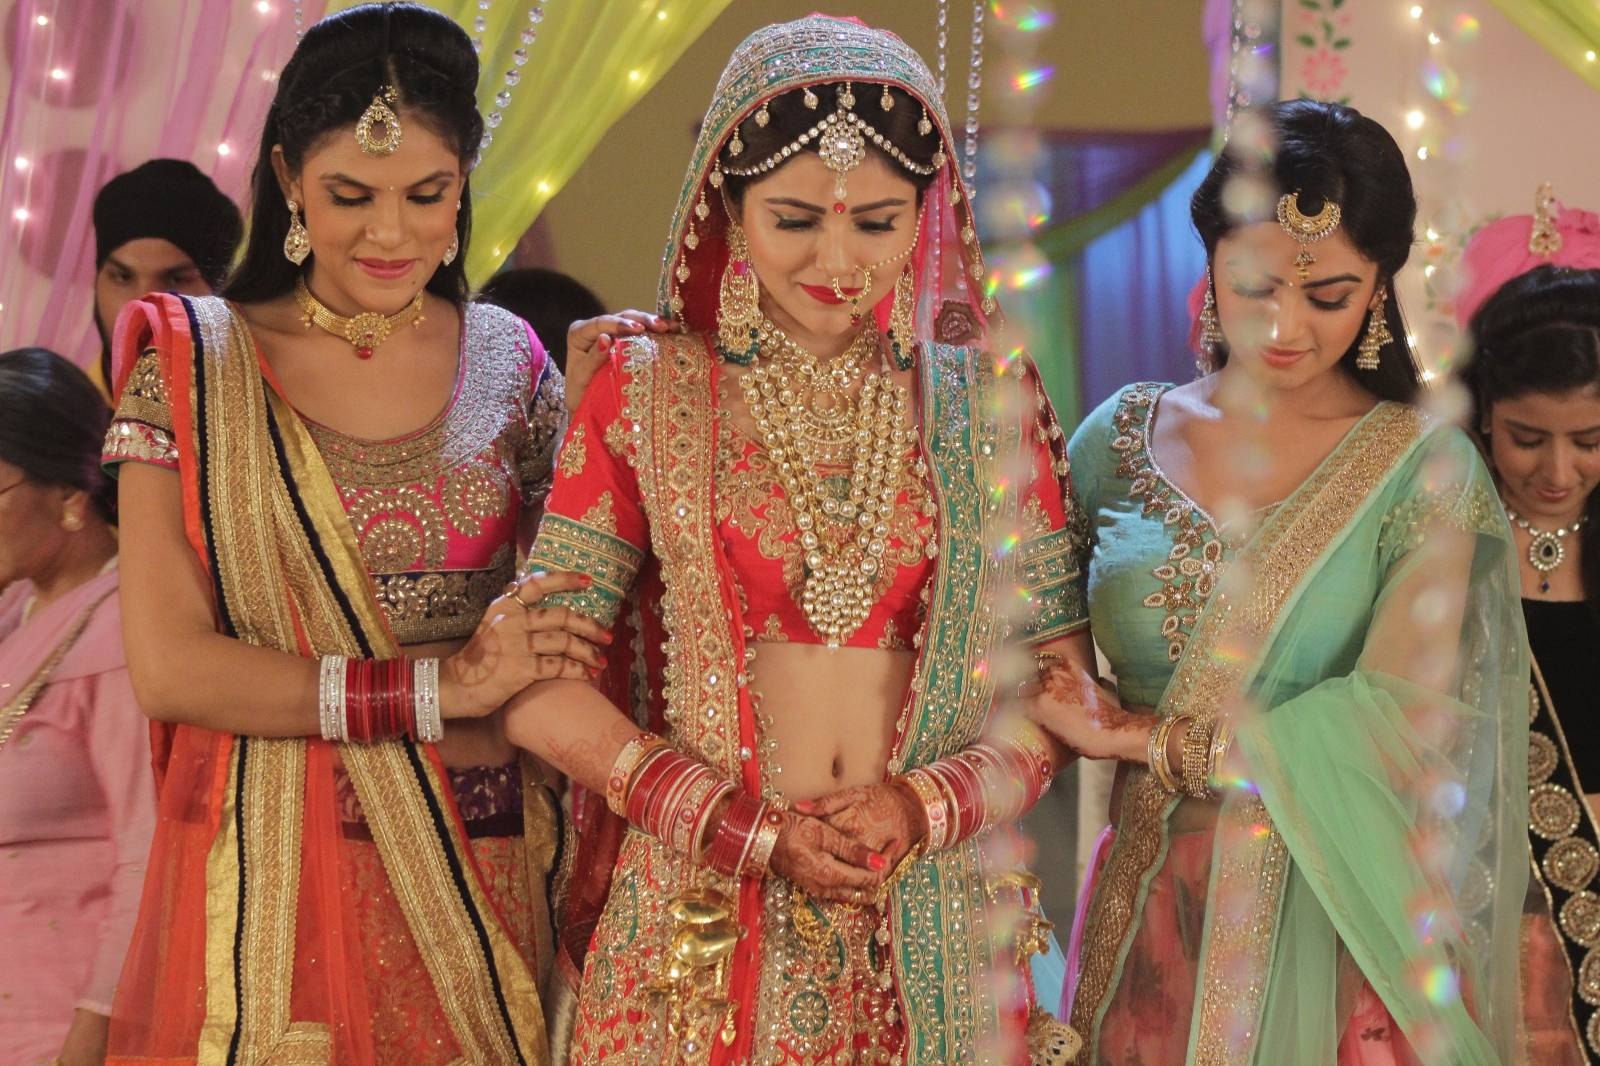 Saumya and Harman tie the knot in Shakti - ColorsTv